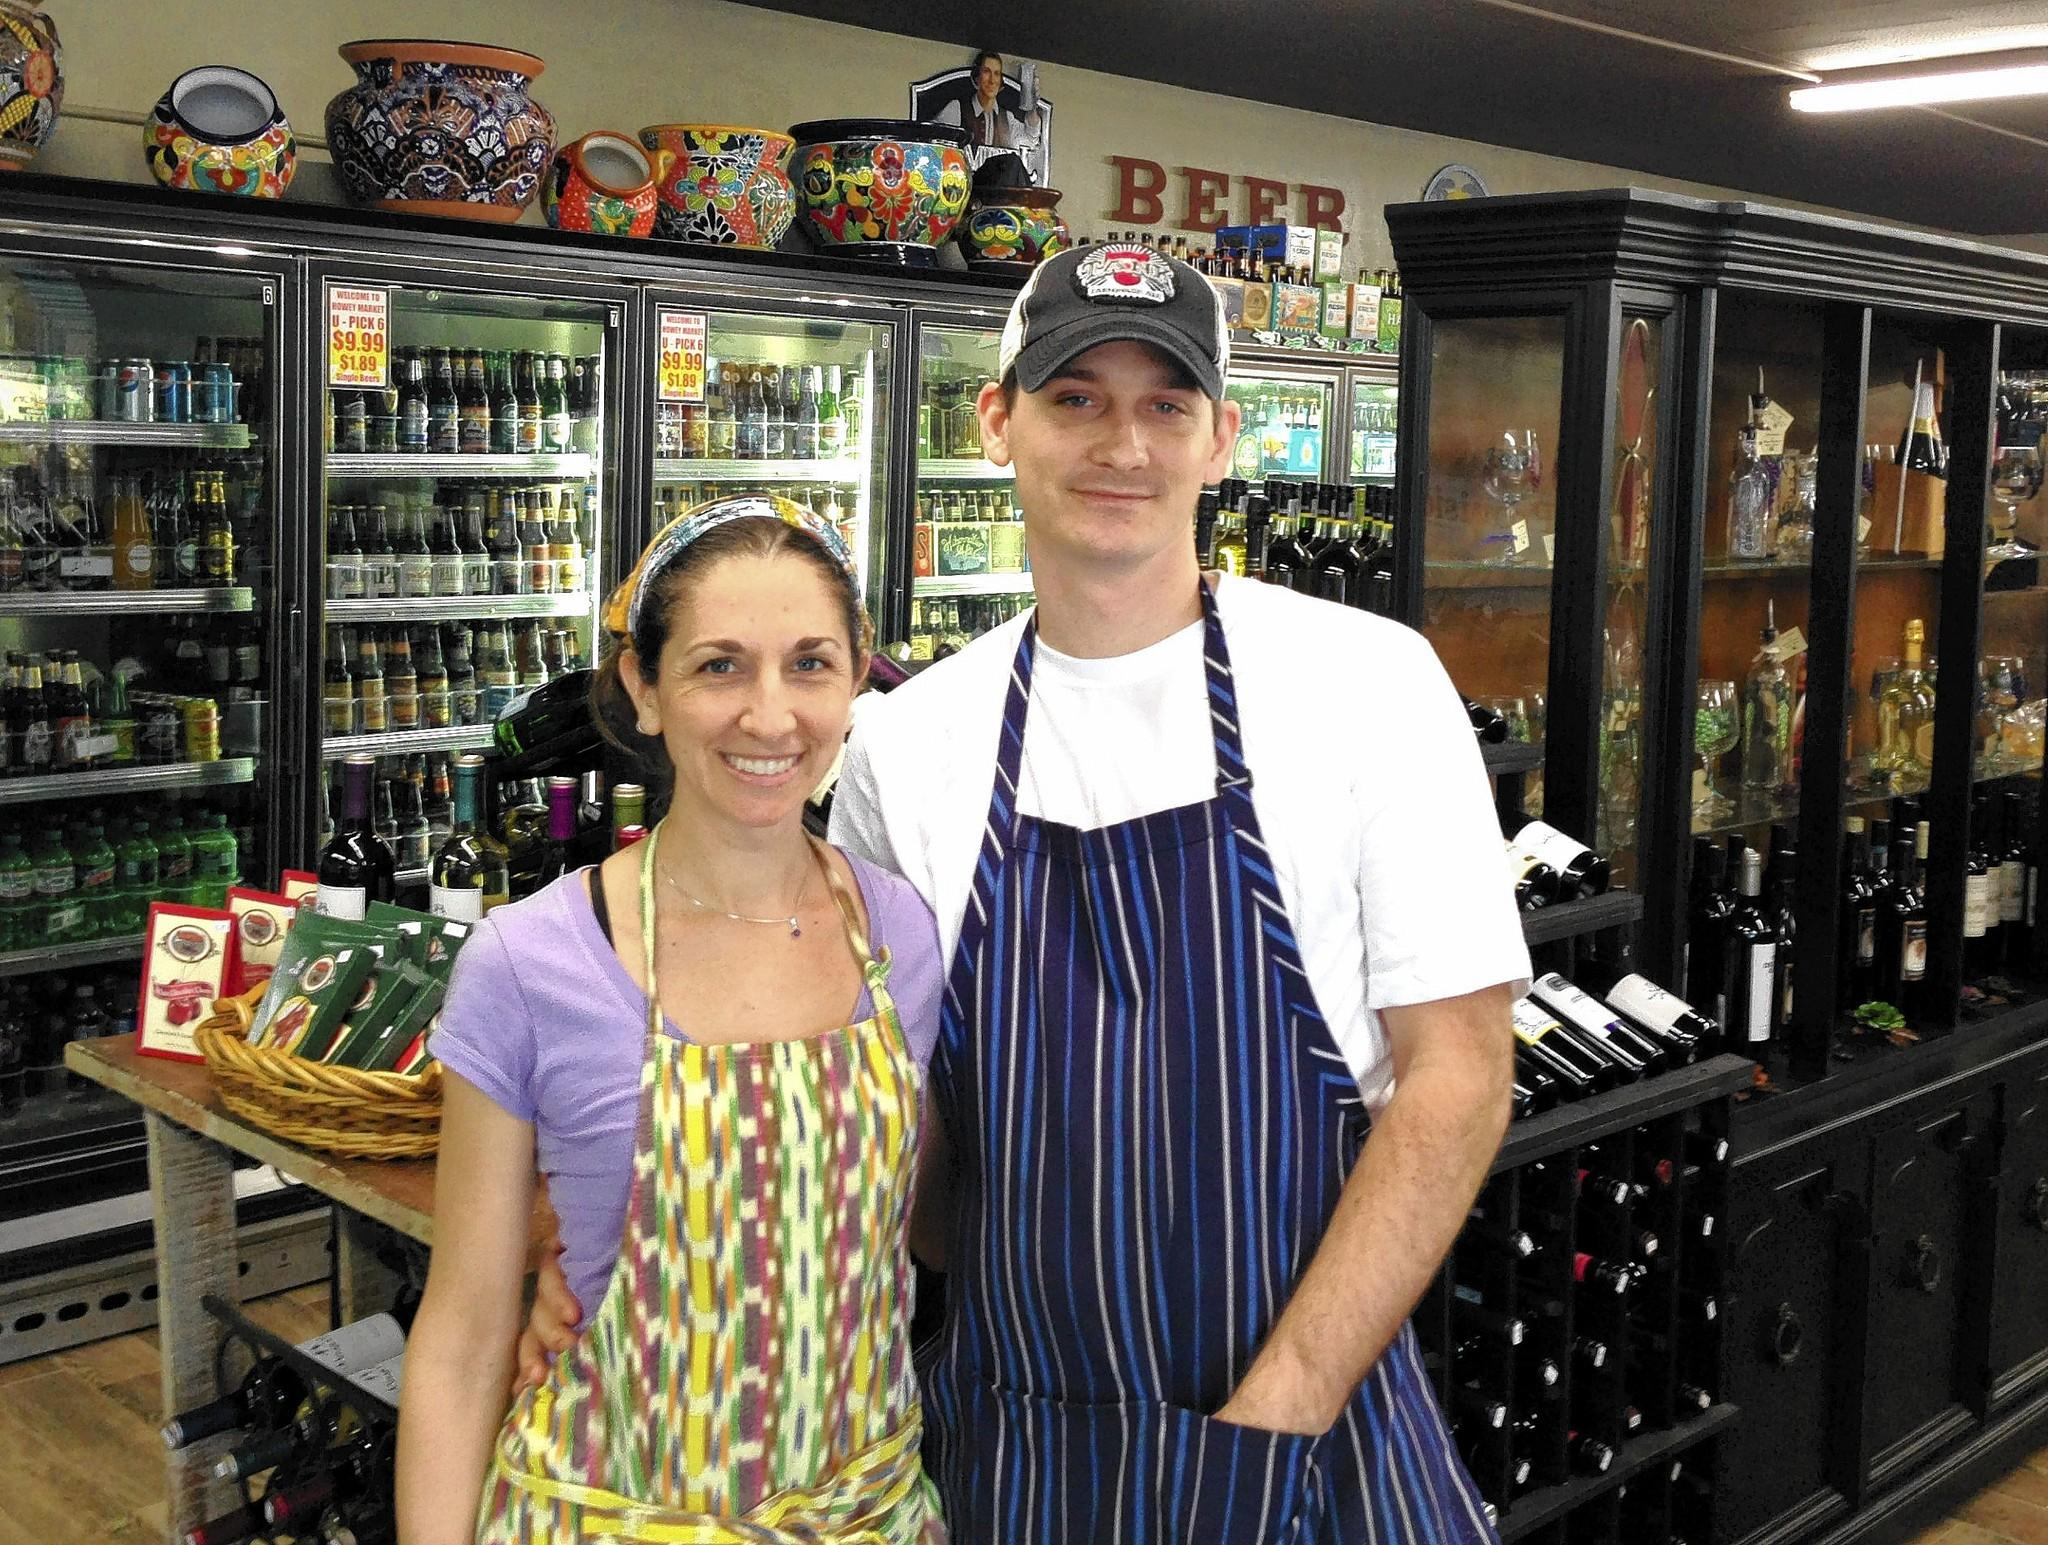 Kelly Reed and Michael Reed, children of the owners of the new Howey Market, Glen and Janet Reed.